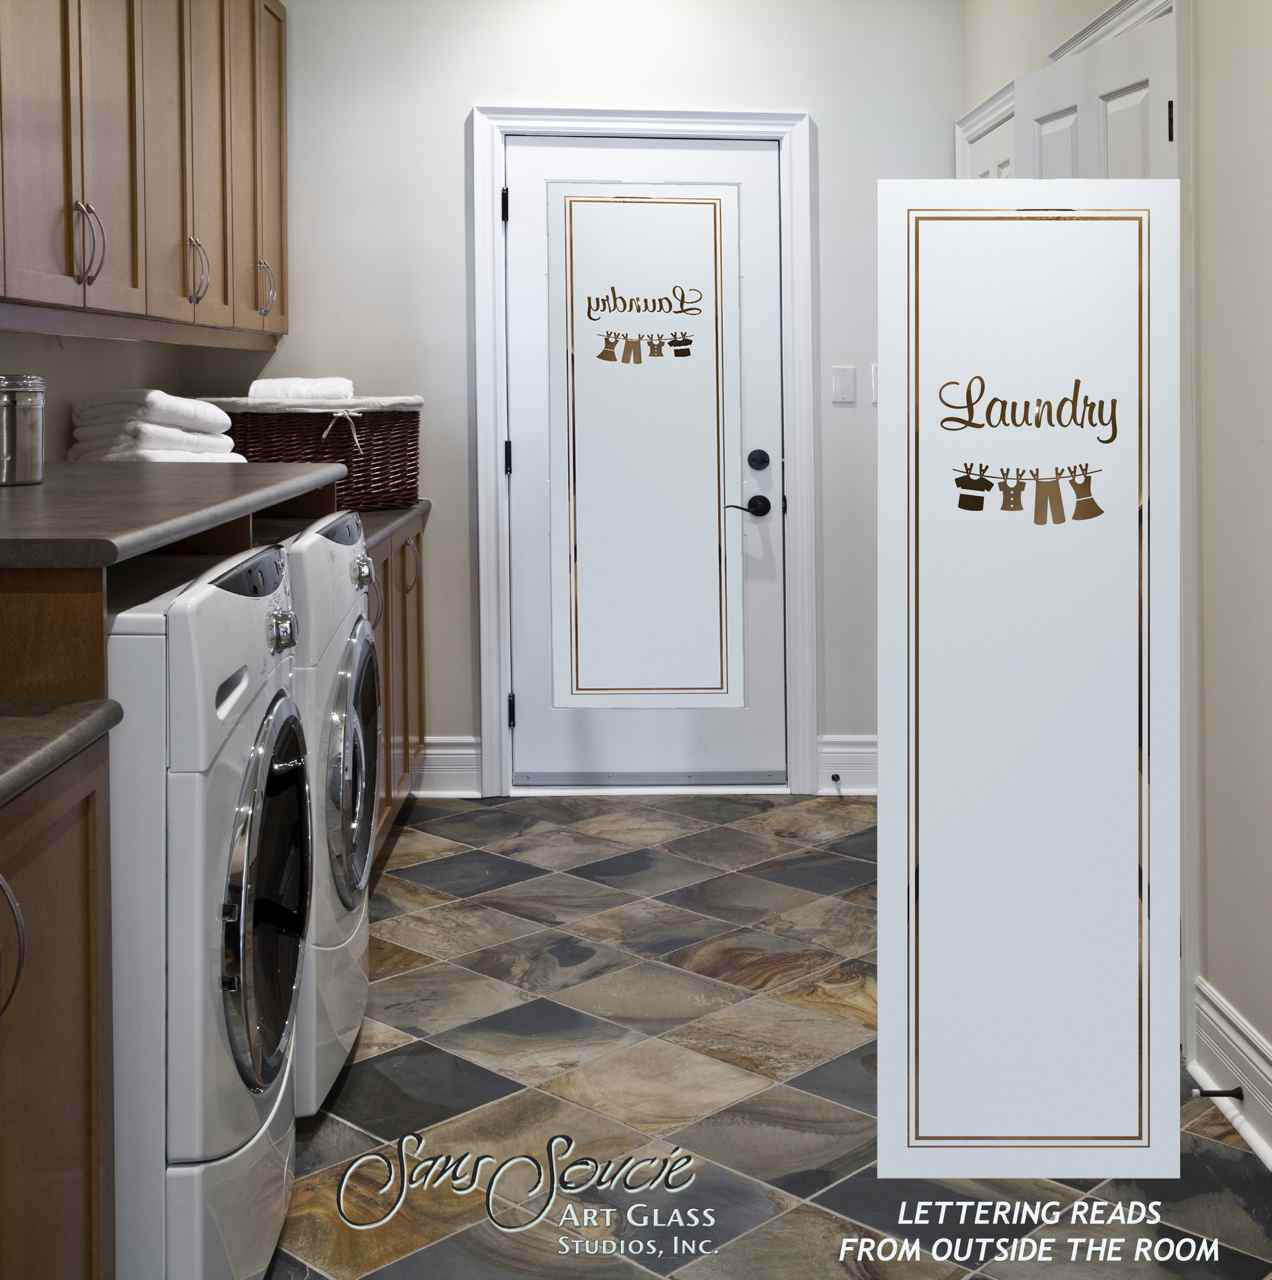 Best ideas about Laundry Room Doors . Save or Pin frosted glass laundry room doors Sans Soucie Art Glass Now.